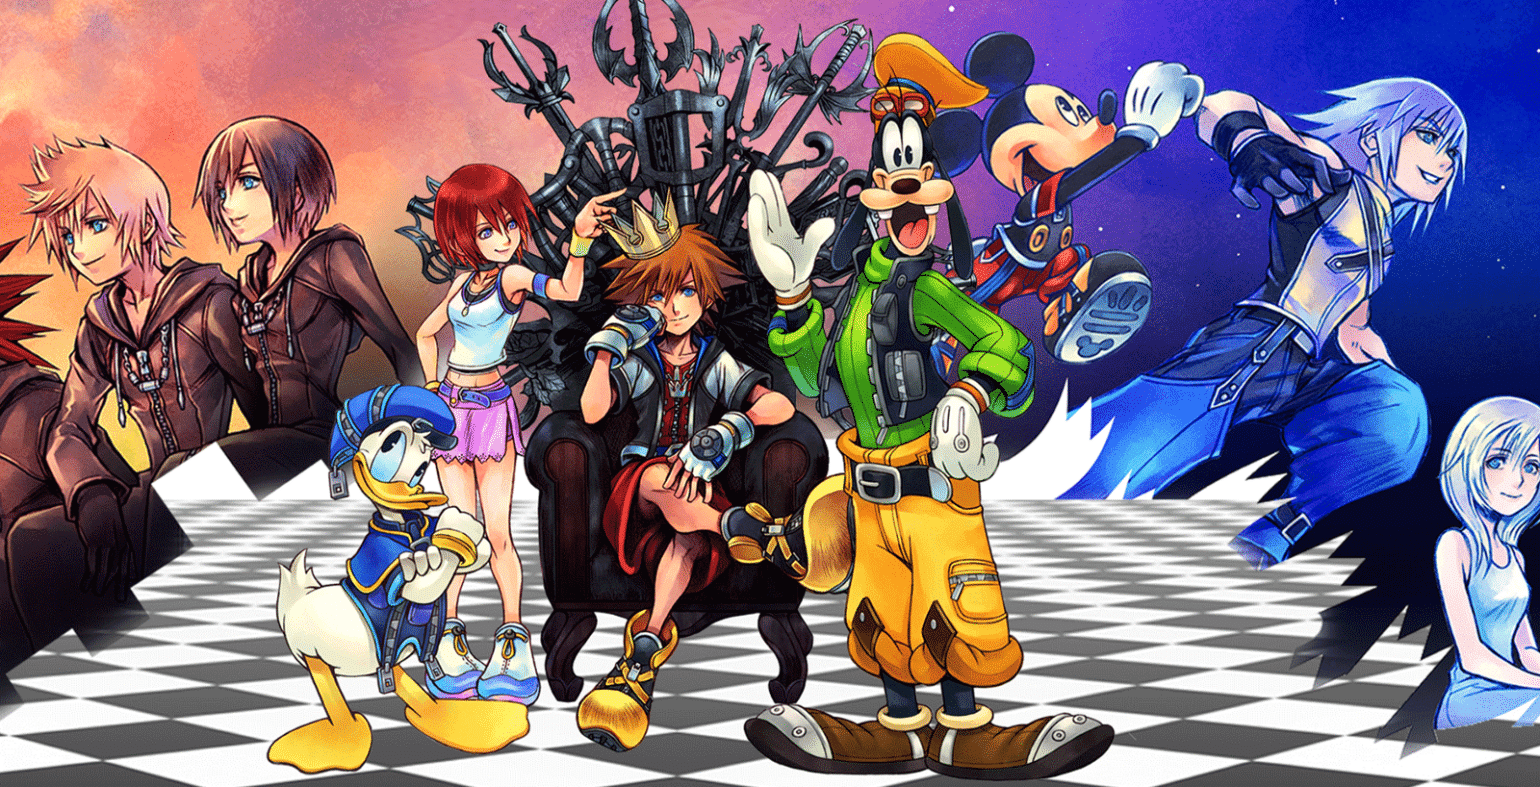 Kingdom Hearts: The Story So Far annoncé